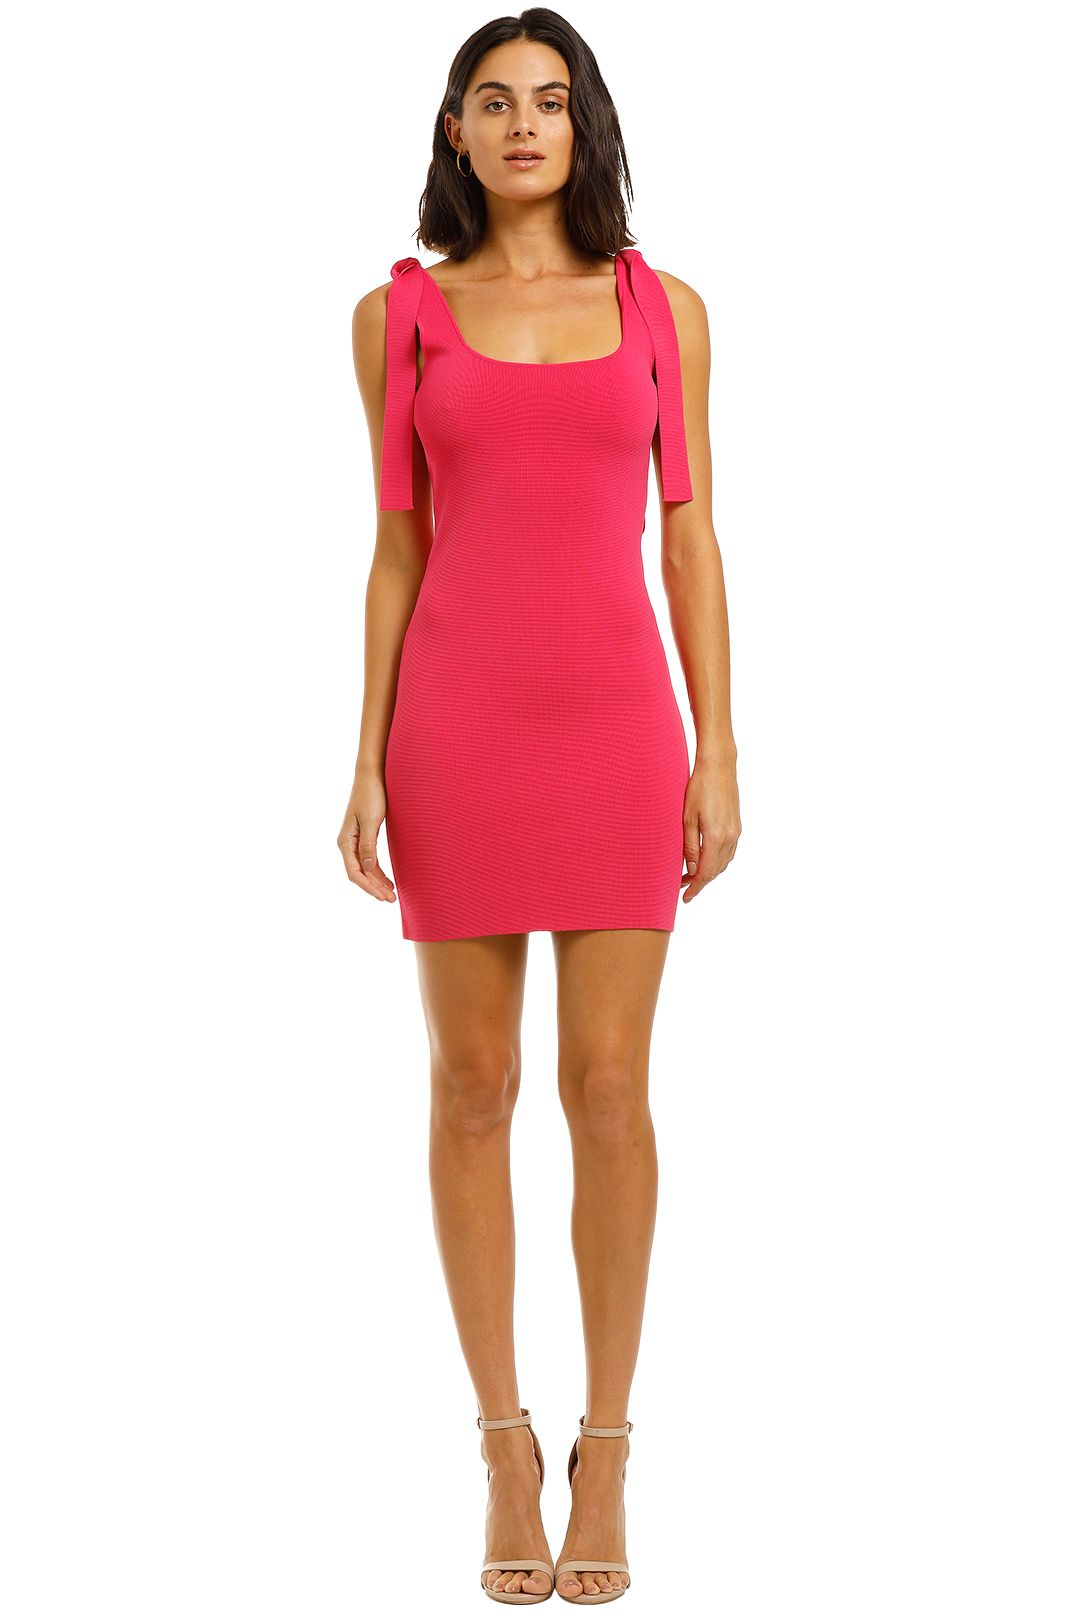 By-Johnny-Tie-Up-Knit-Mini-Pink-Front